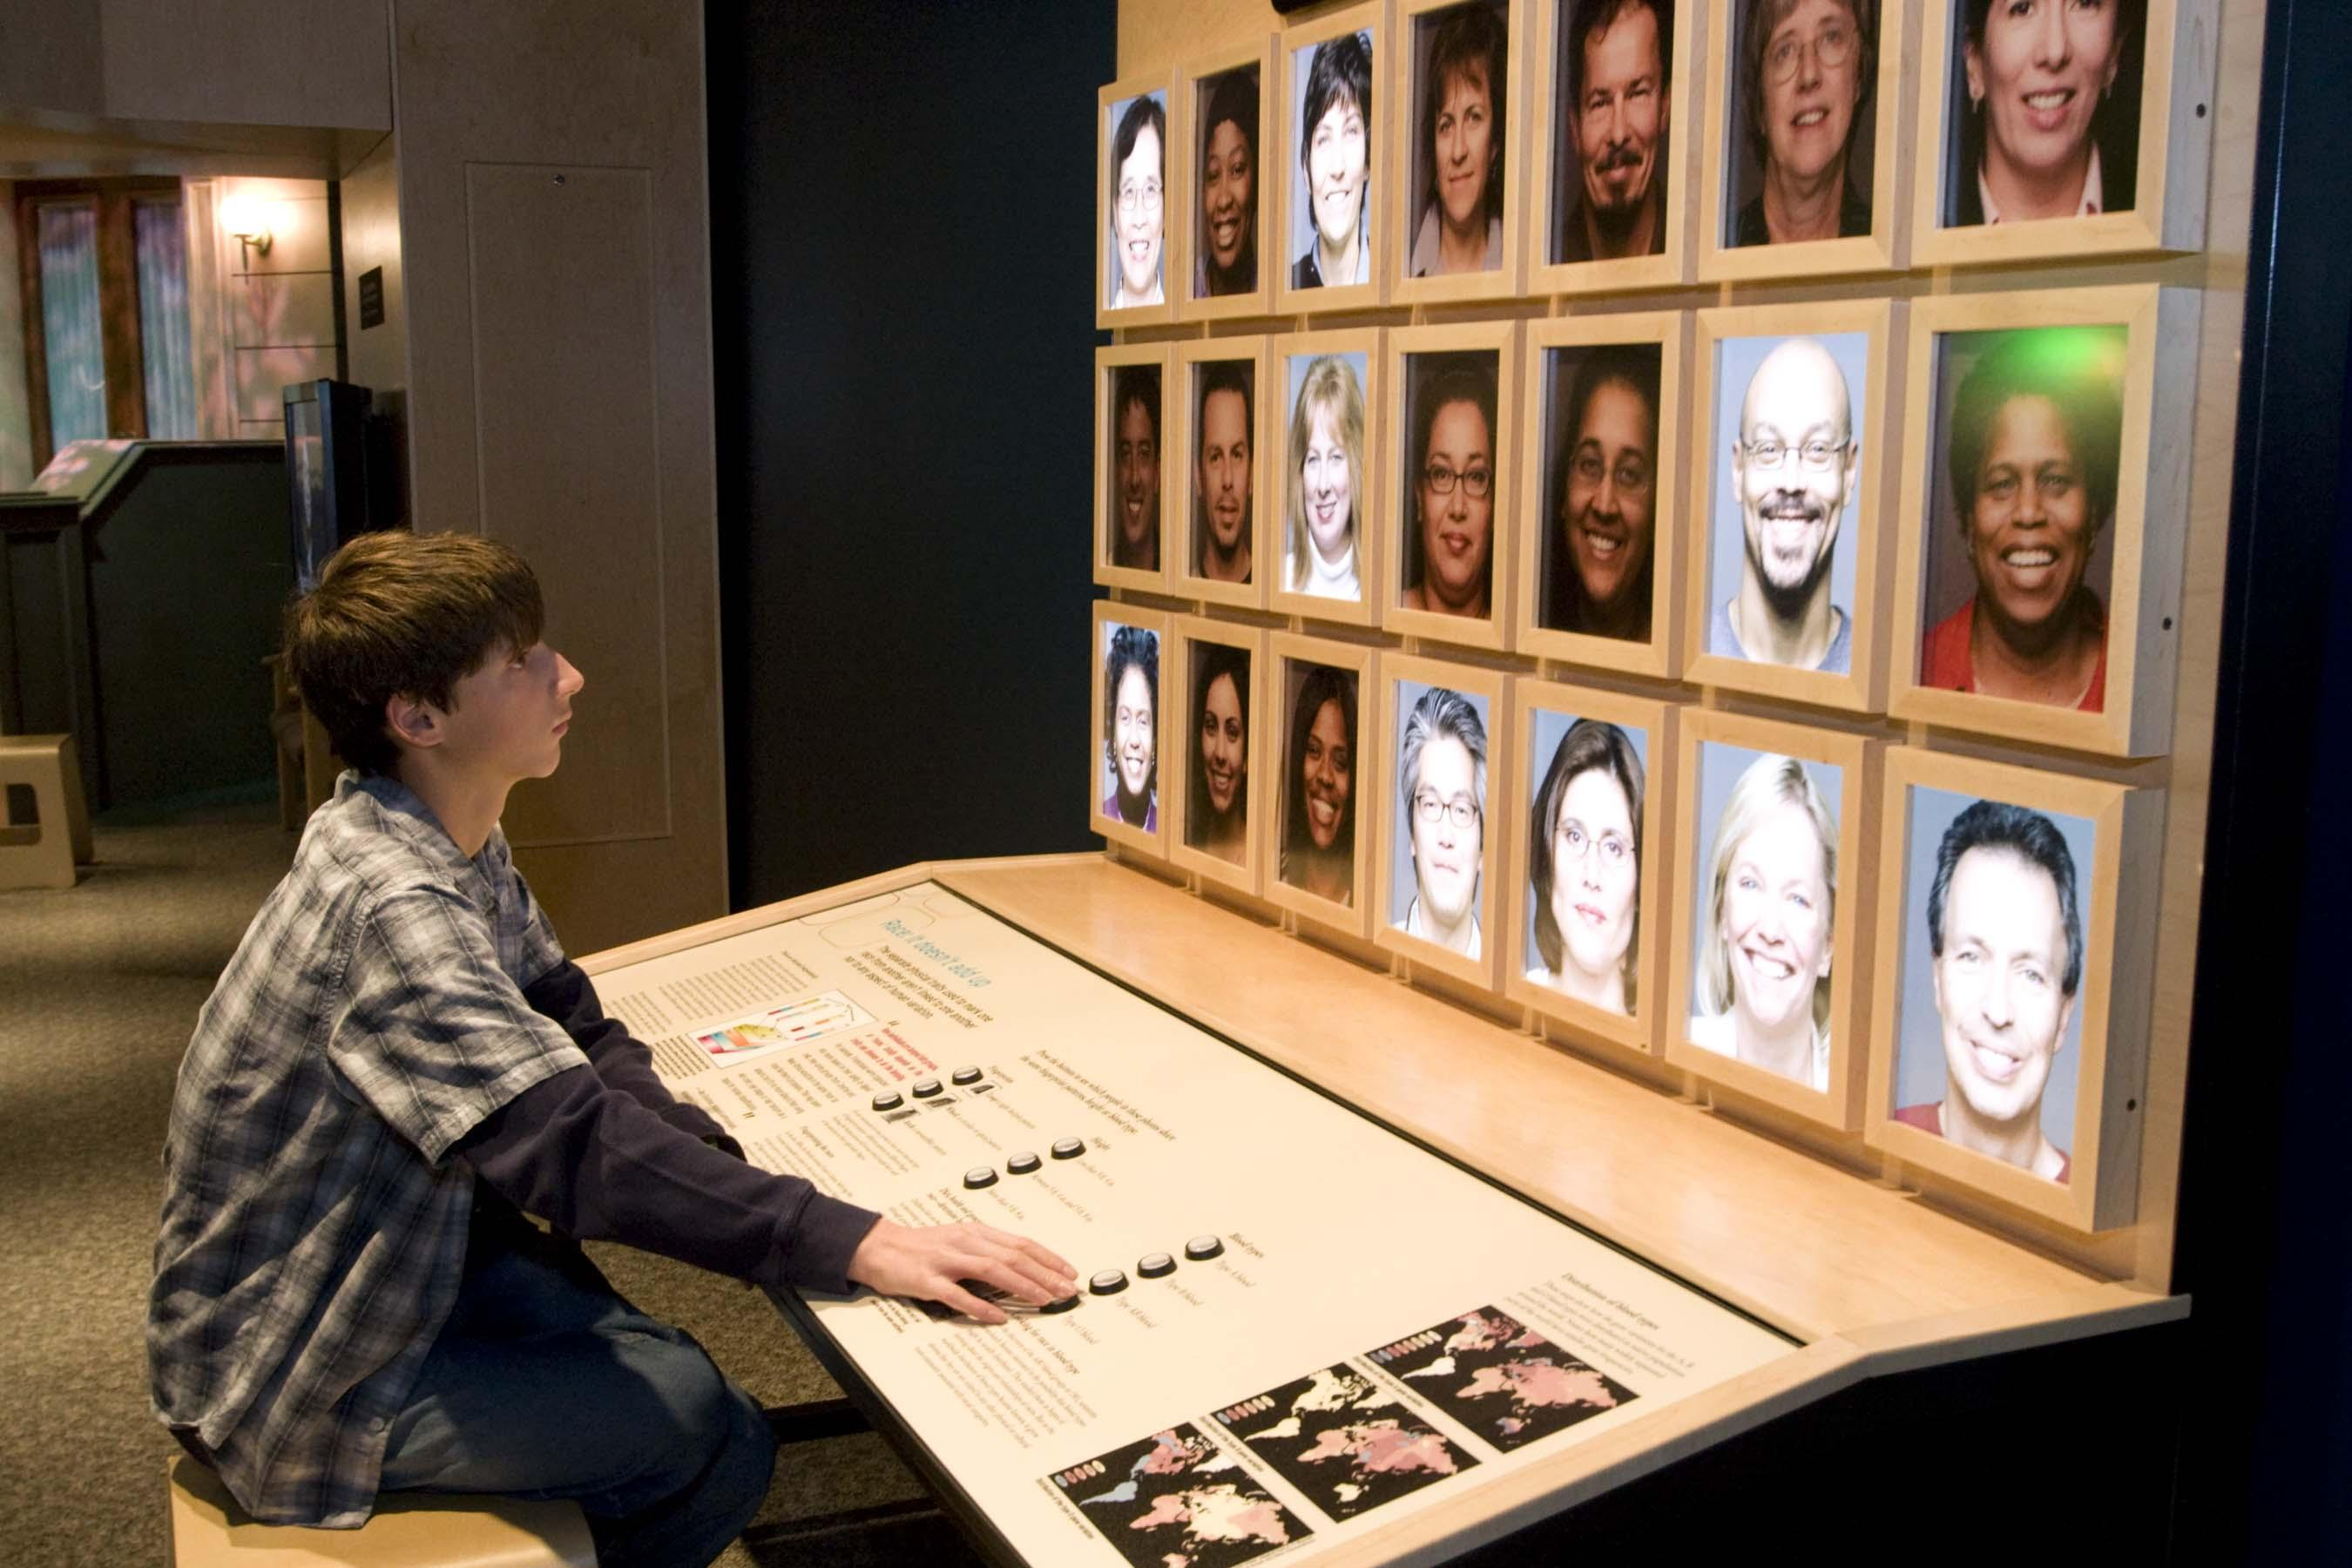 An interactive game about the traits people share yields surprising results that challenge visitors to reconsider the ways in which they categorize people. (Courtesy of the American Anthropological Association and Science Museum of Minnesota)